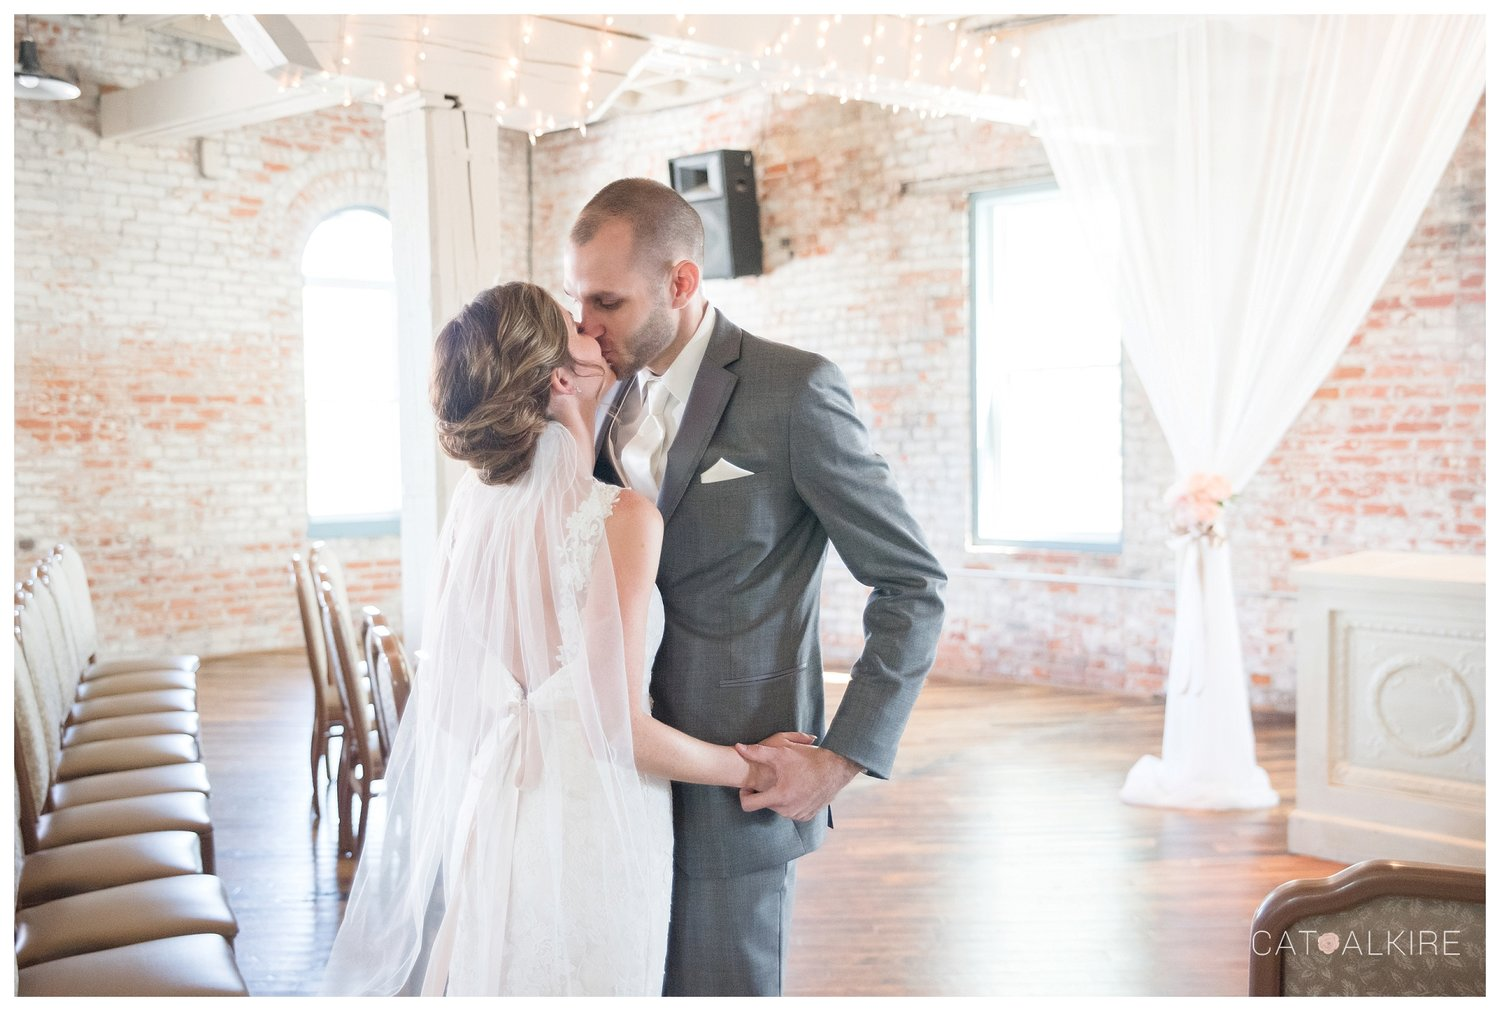 Brianna & Ahrin | Married | Bread and Chocolate | Goshen, Indiana ...